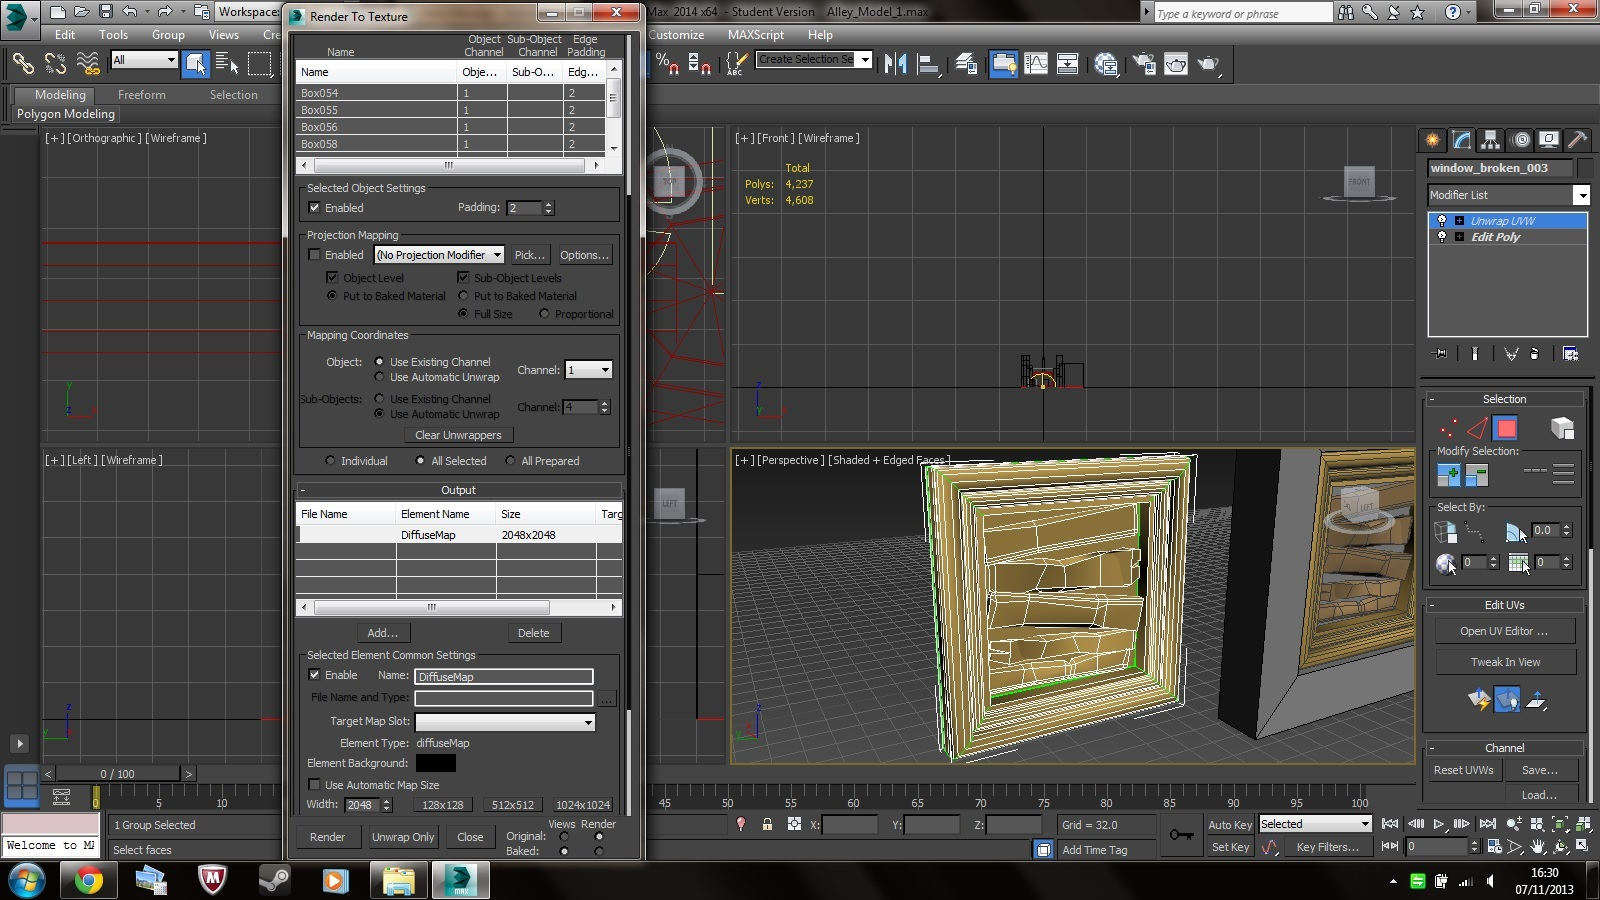 Render to Texture not working properly - Autodesk Community- 3ds Max